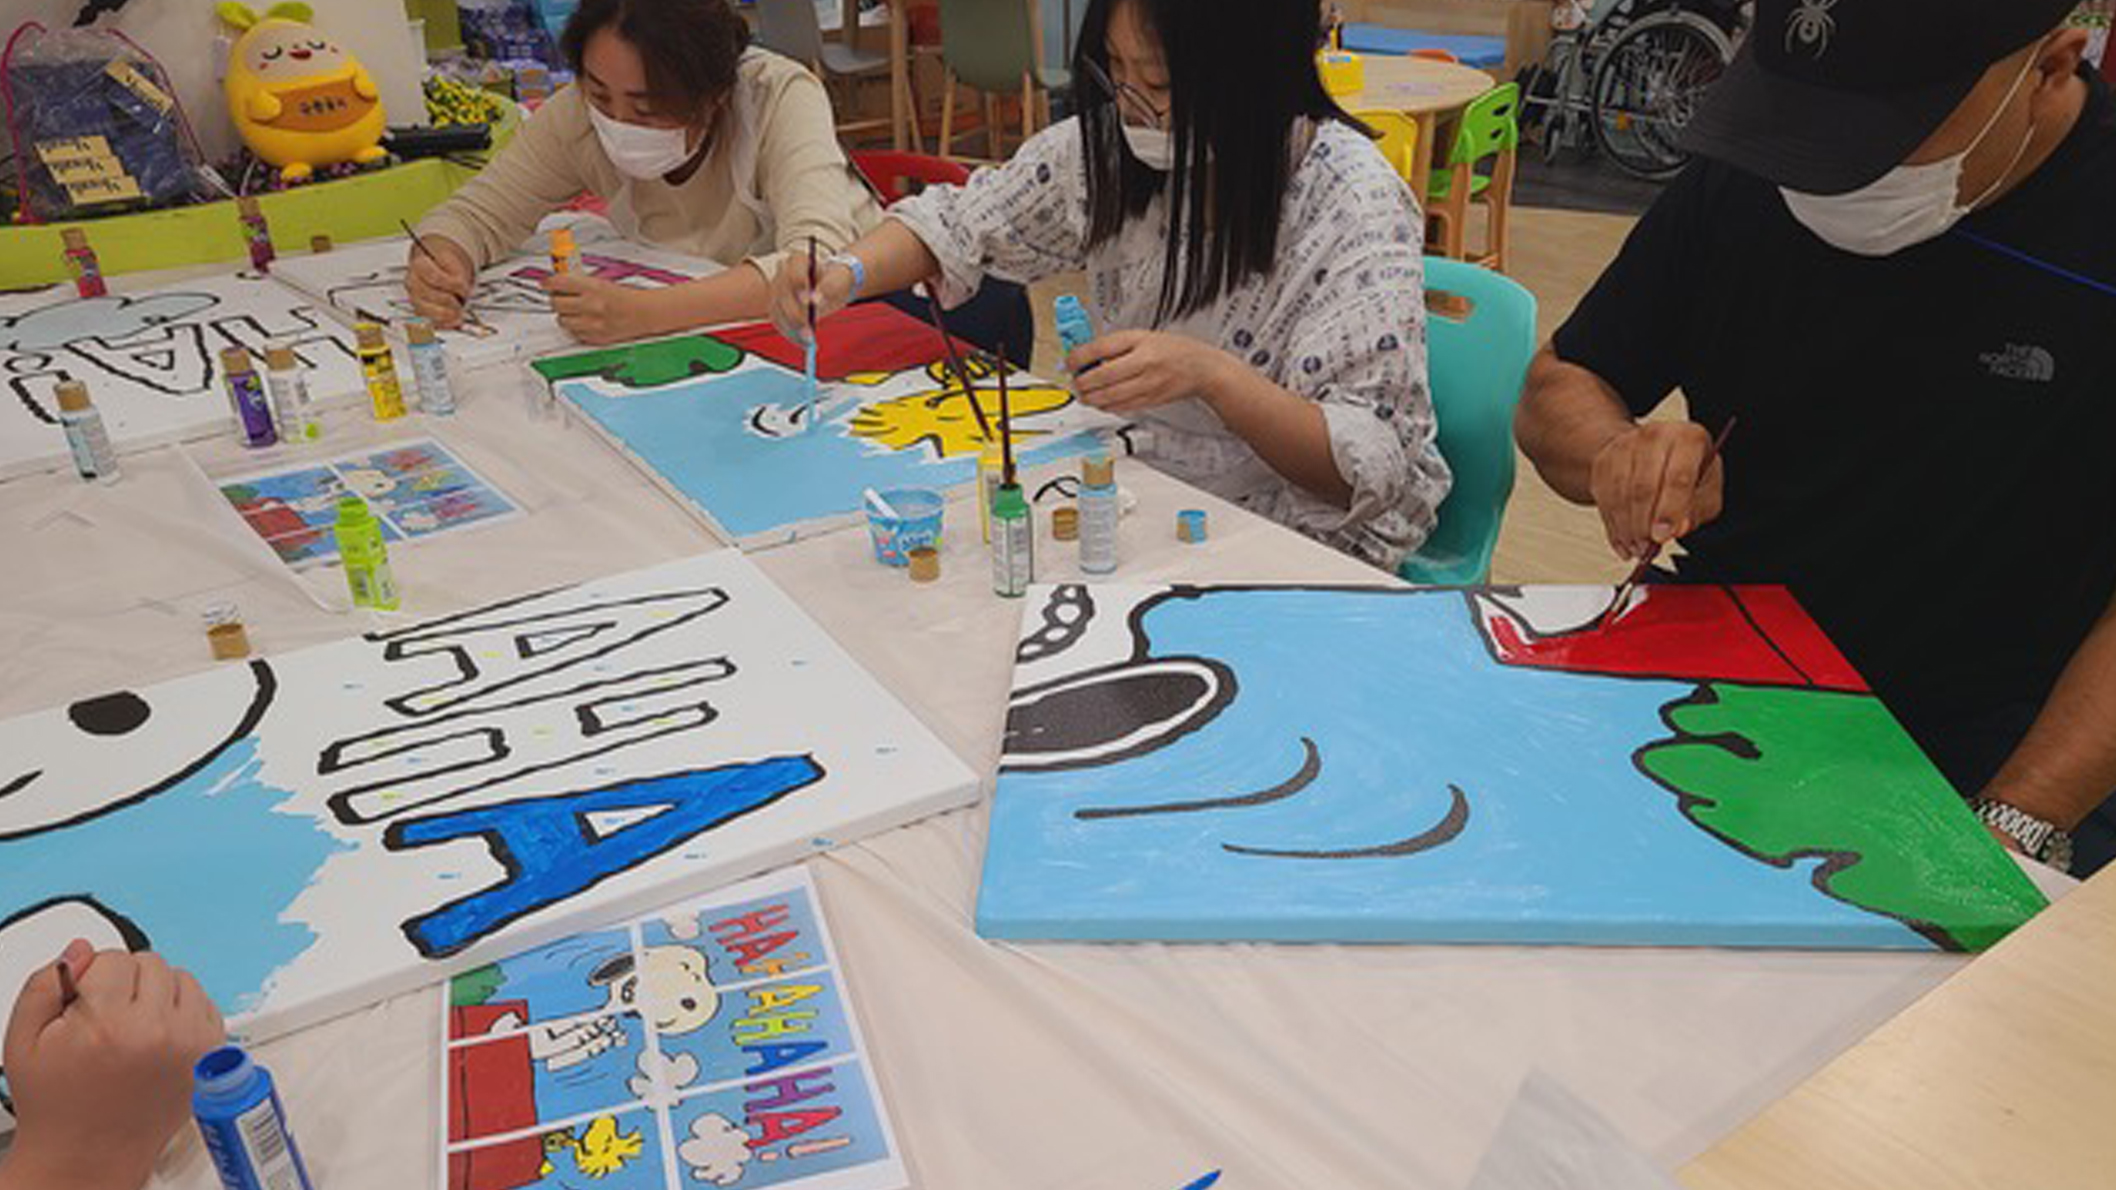 Children sitting at a table and painting a mural in a hospital.